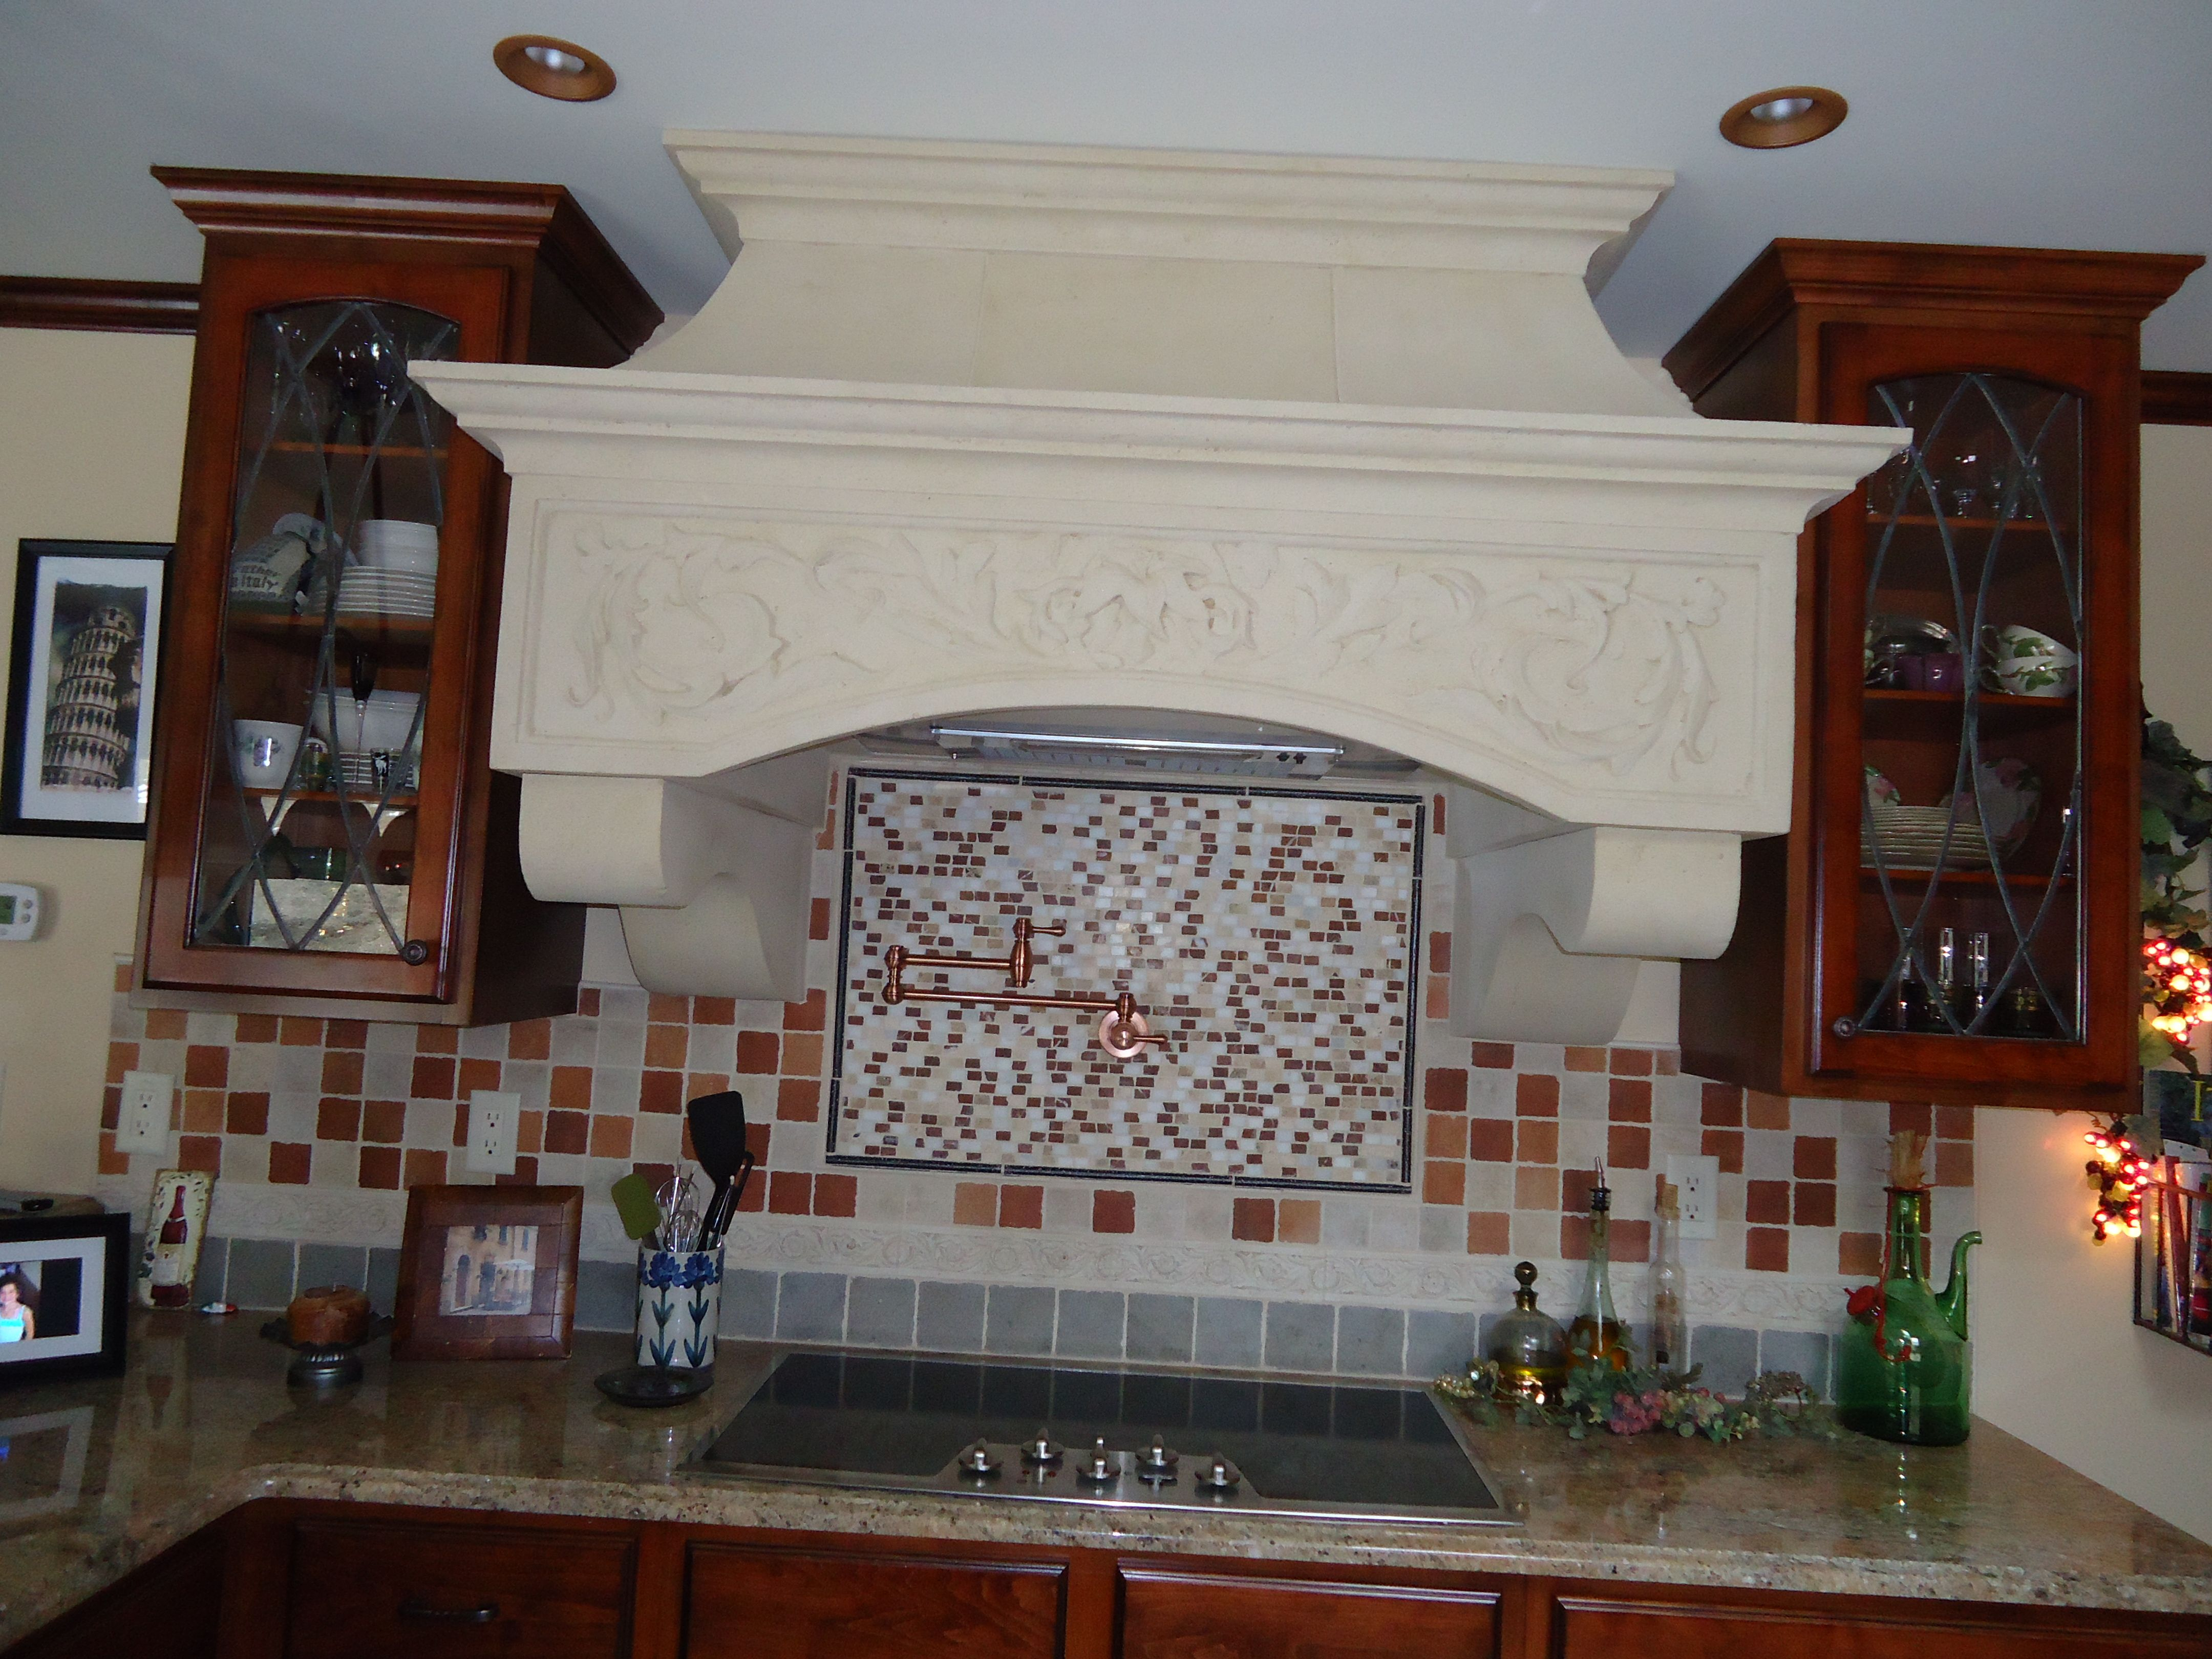 My Stone Hood Pot Filler Tile Design Stained Glass On Cabinets